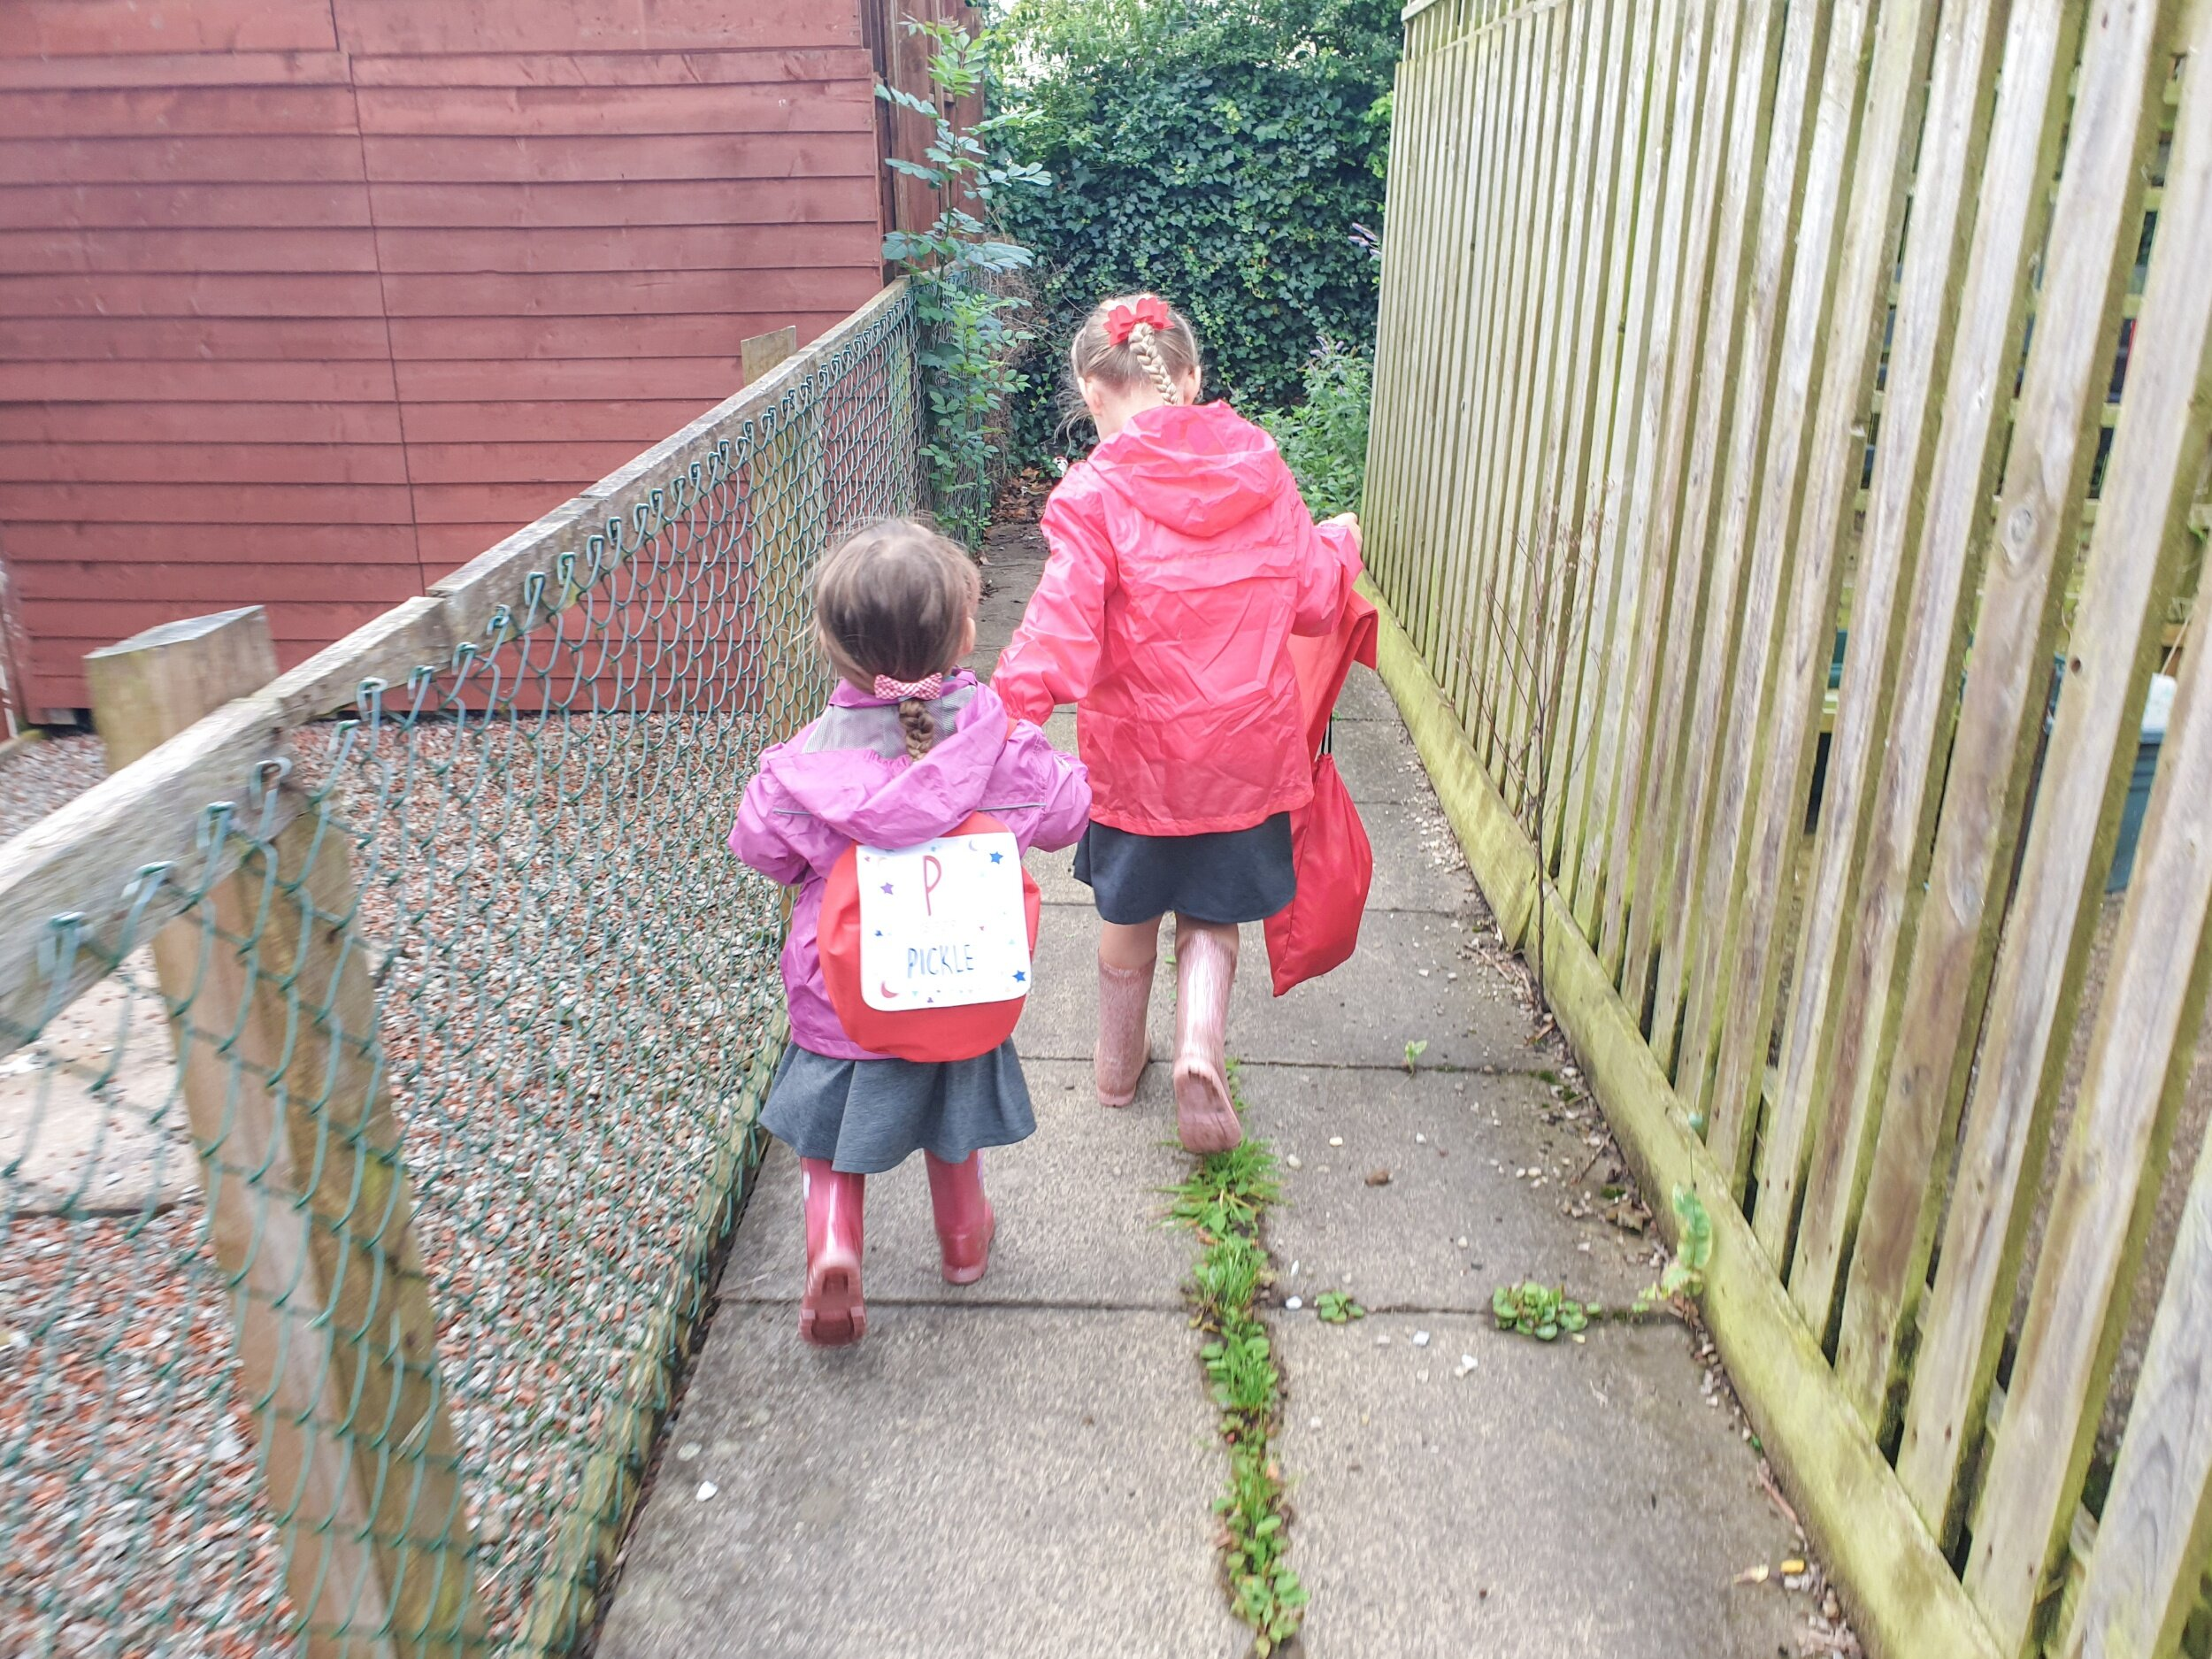 Walking to school together hand-in-hand